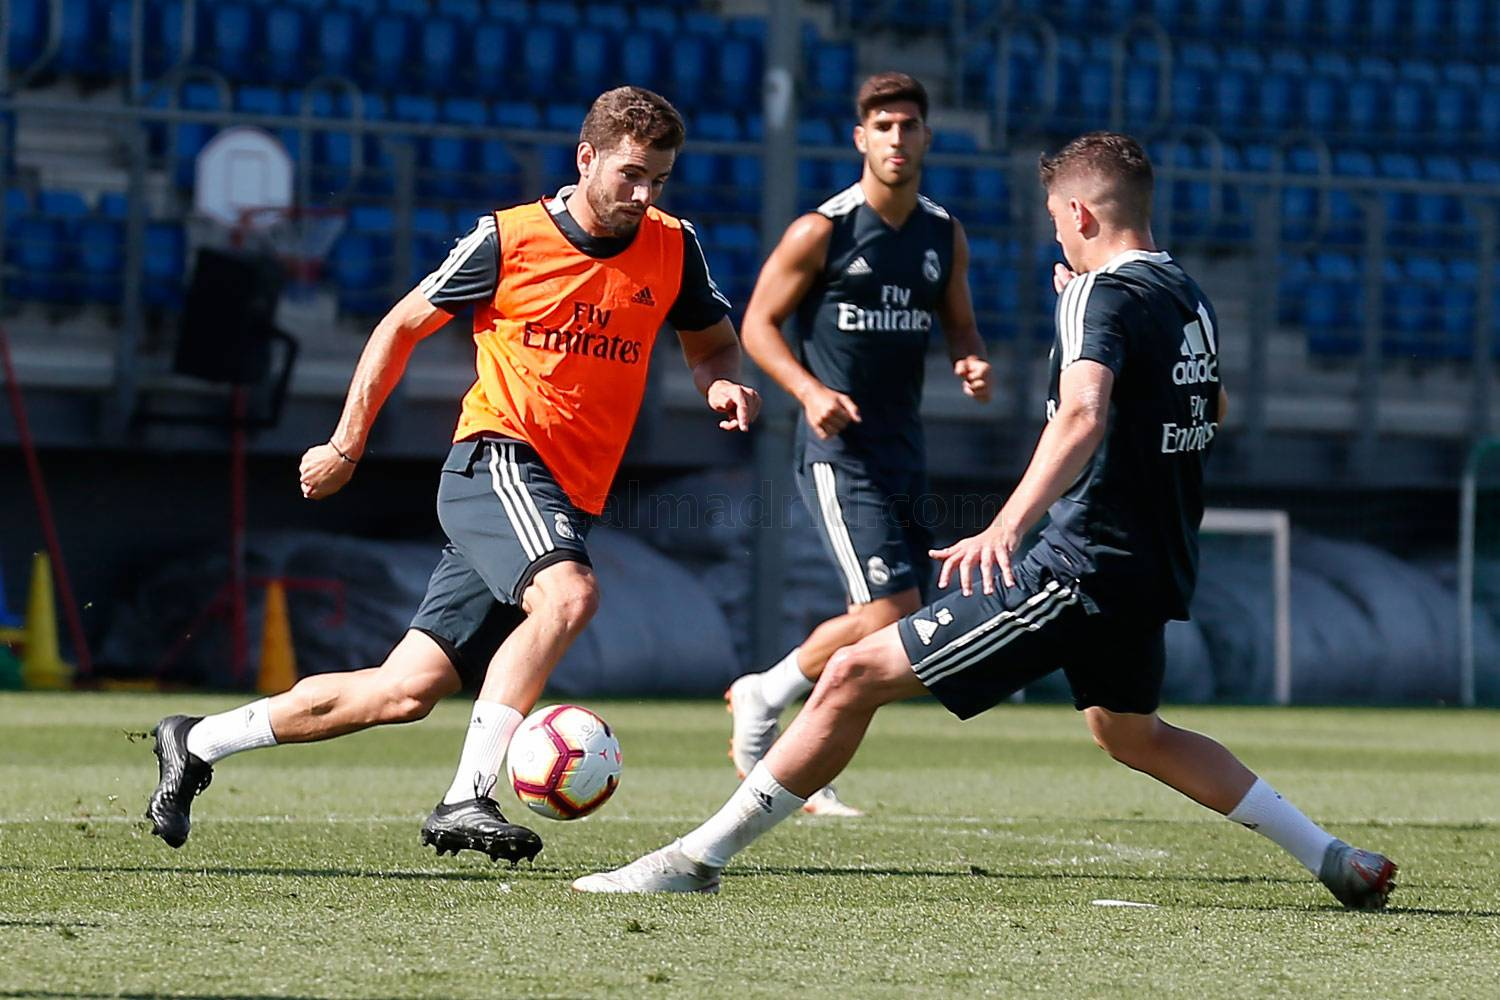 Real Madrid - Entrenamiento del Real Madrid - 20-09-2018